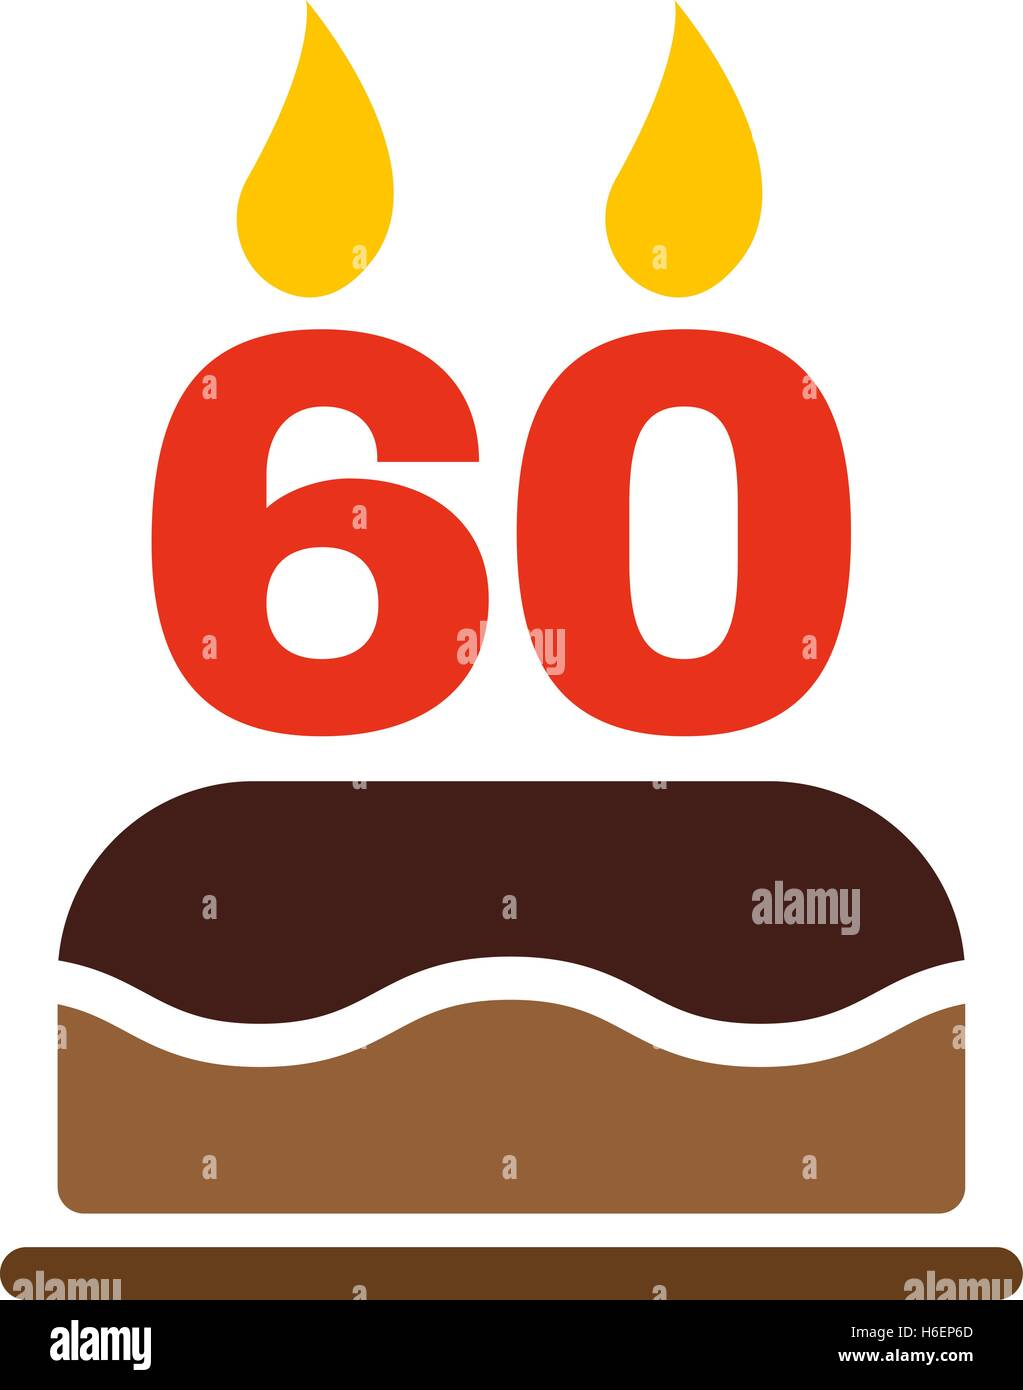 The Birthday Cake With Candles In Form Of Number 60 Icon Symbol Flat Vector Illustration